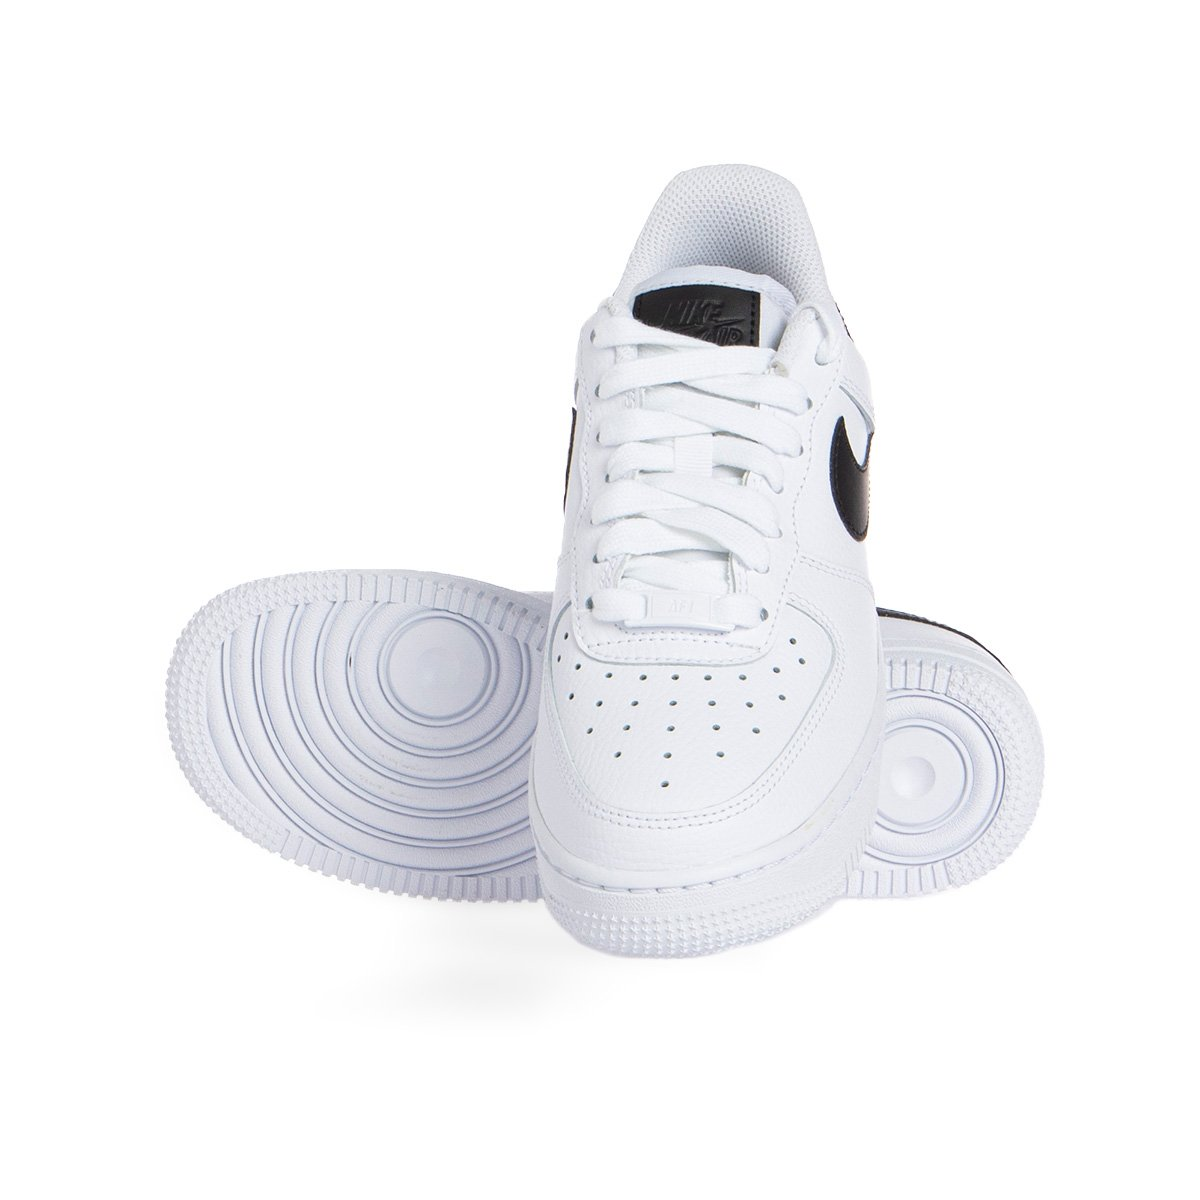 Sneakers WMNS Nike Air Force 1 '07 whitewhite black (315115 152)